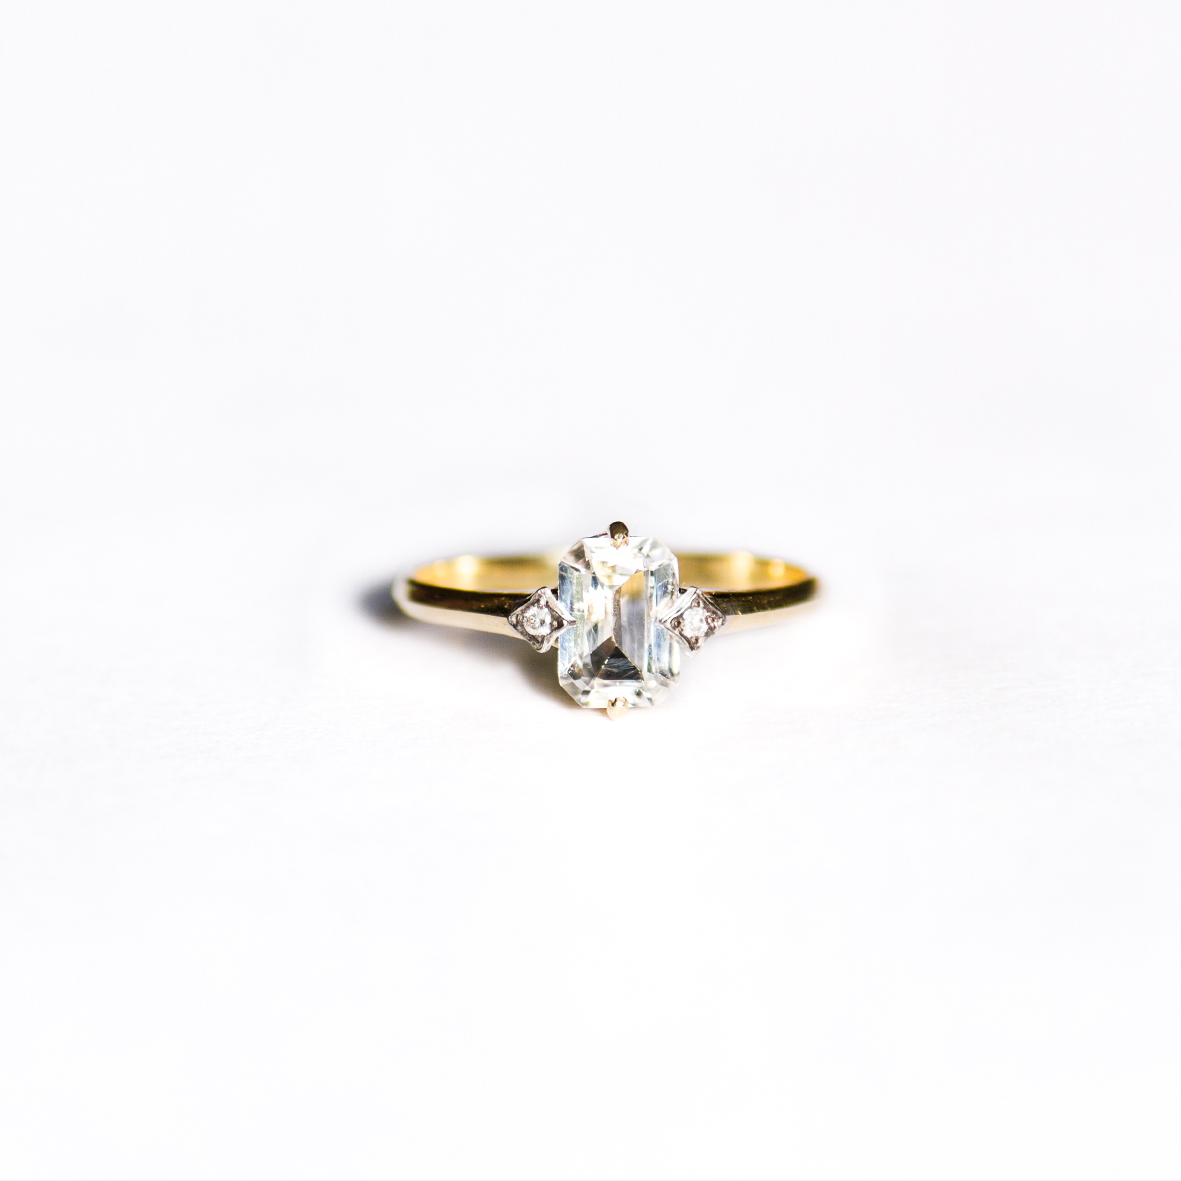 2. OONA_engagement_principal_single sapphire ring copia